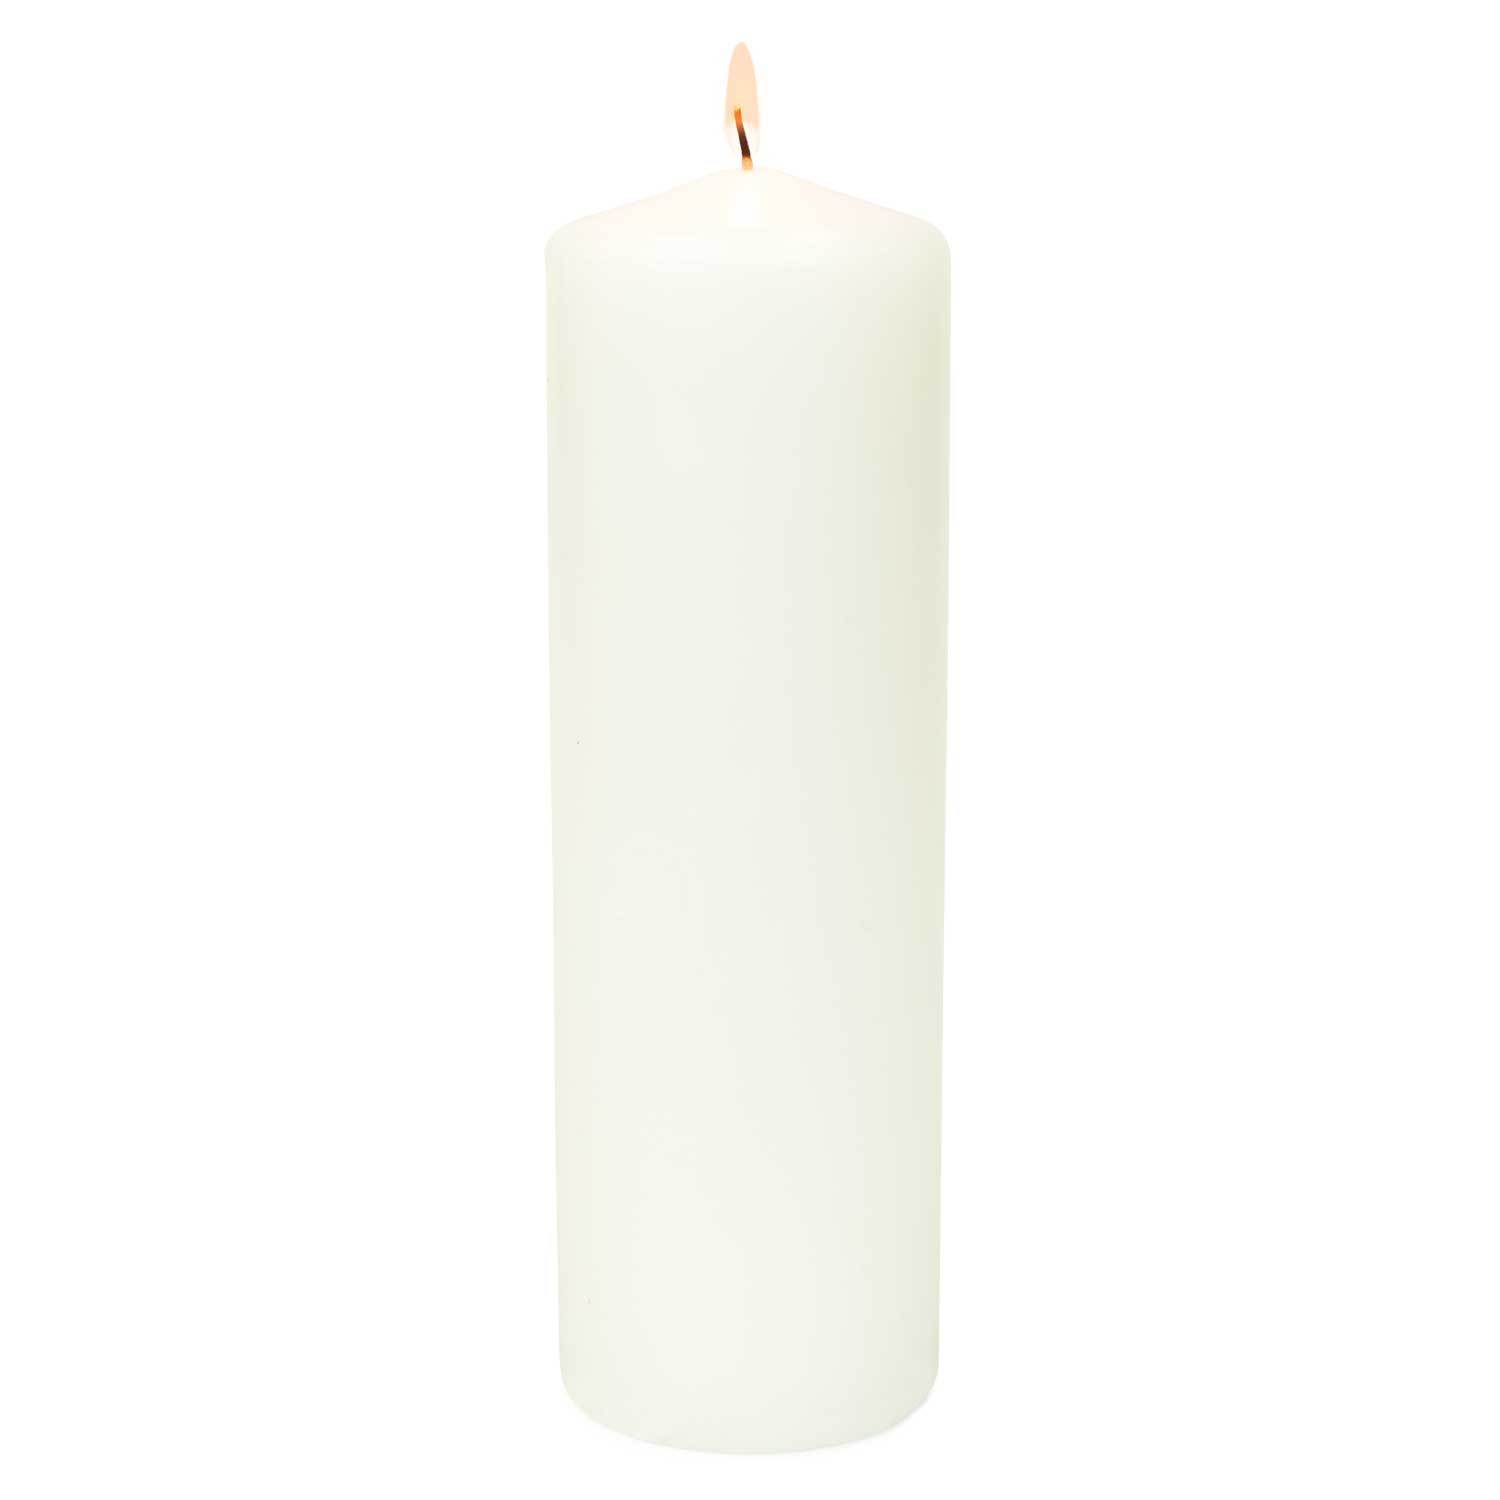 3x12 Unscented White Pillar Candle